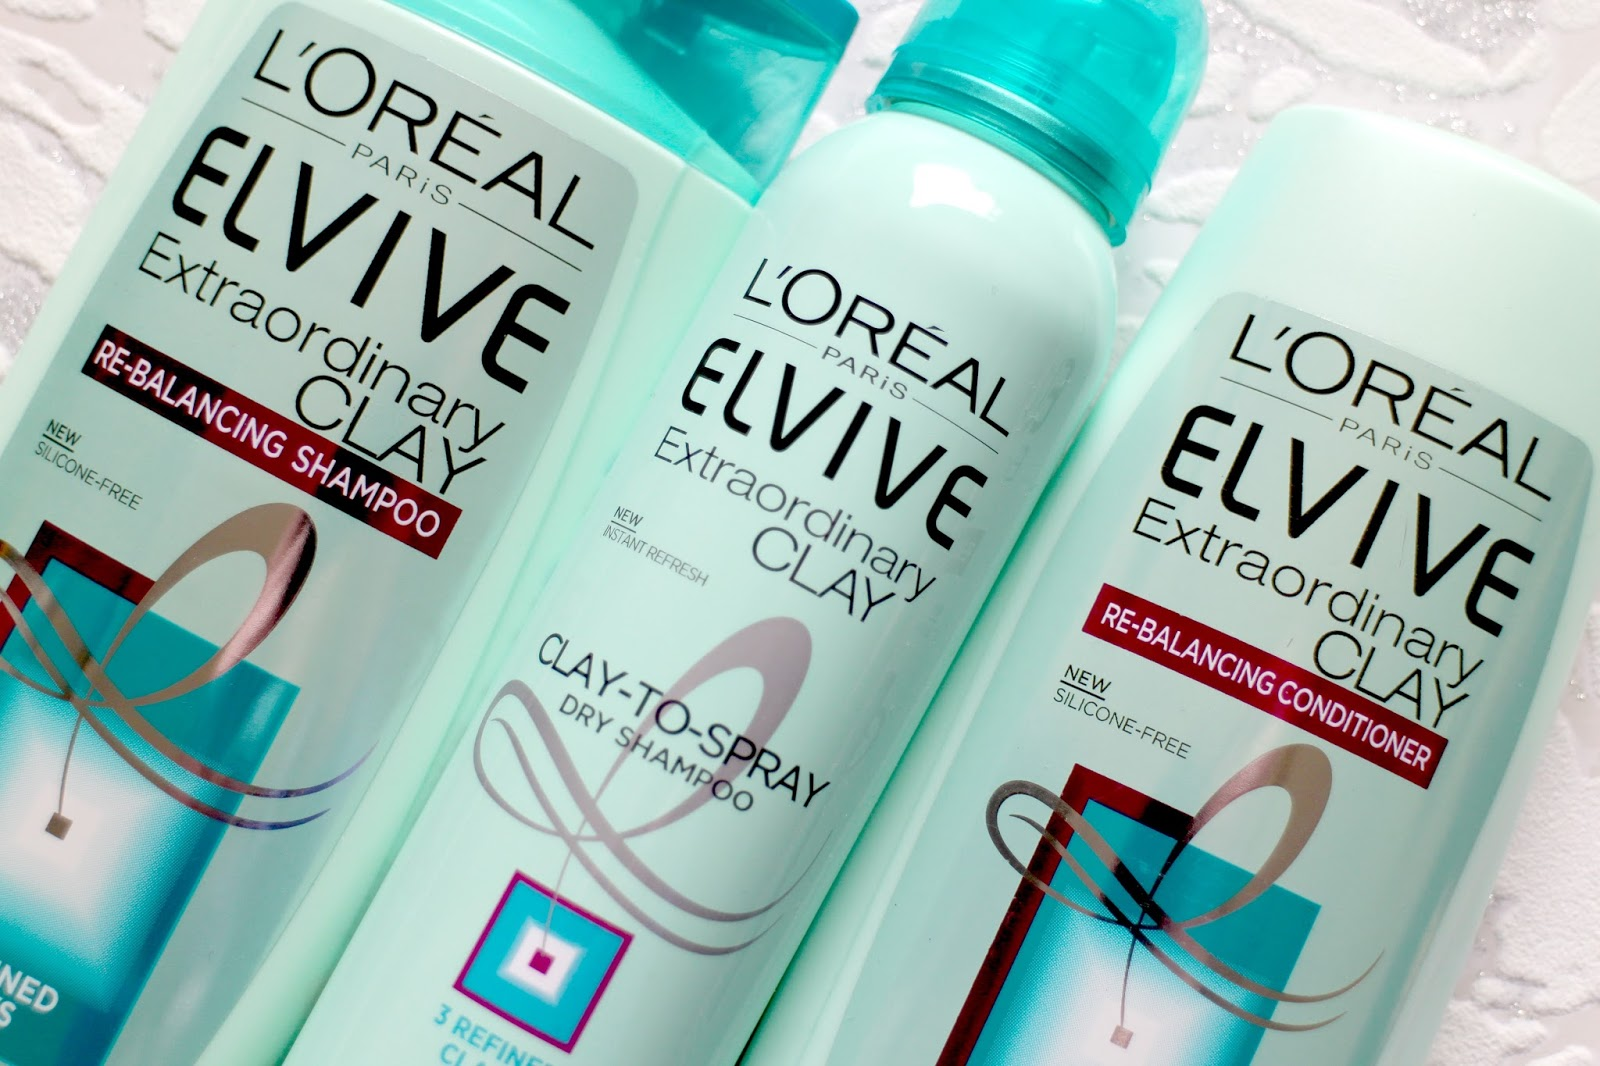 The L'Oreal Elvive Extraordinary Clay Collection